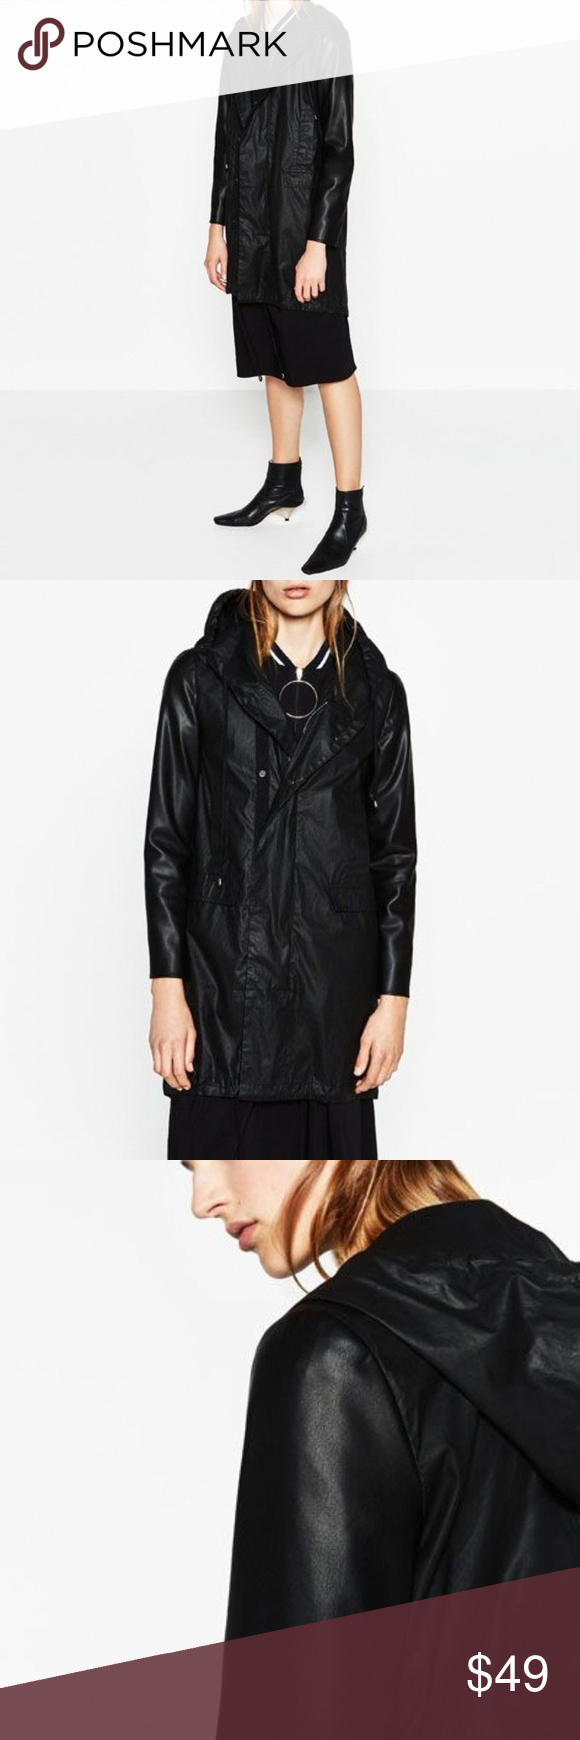 Zara Hooded Rain Jacket with Leather Sleeves XS This